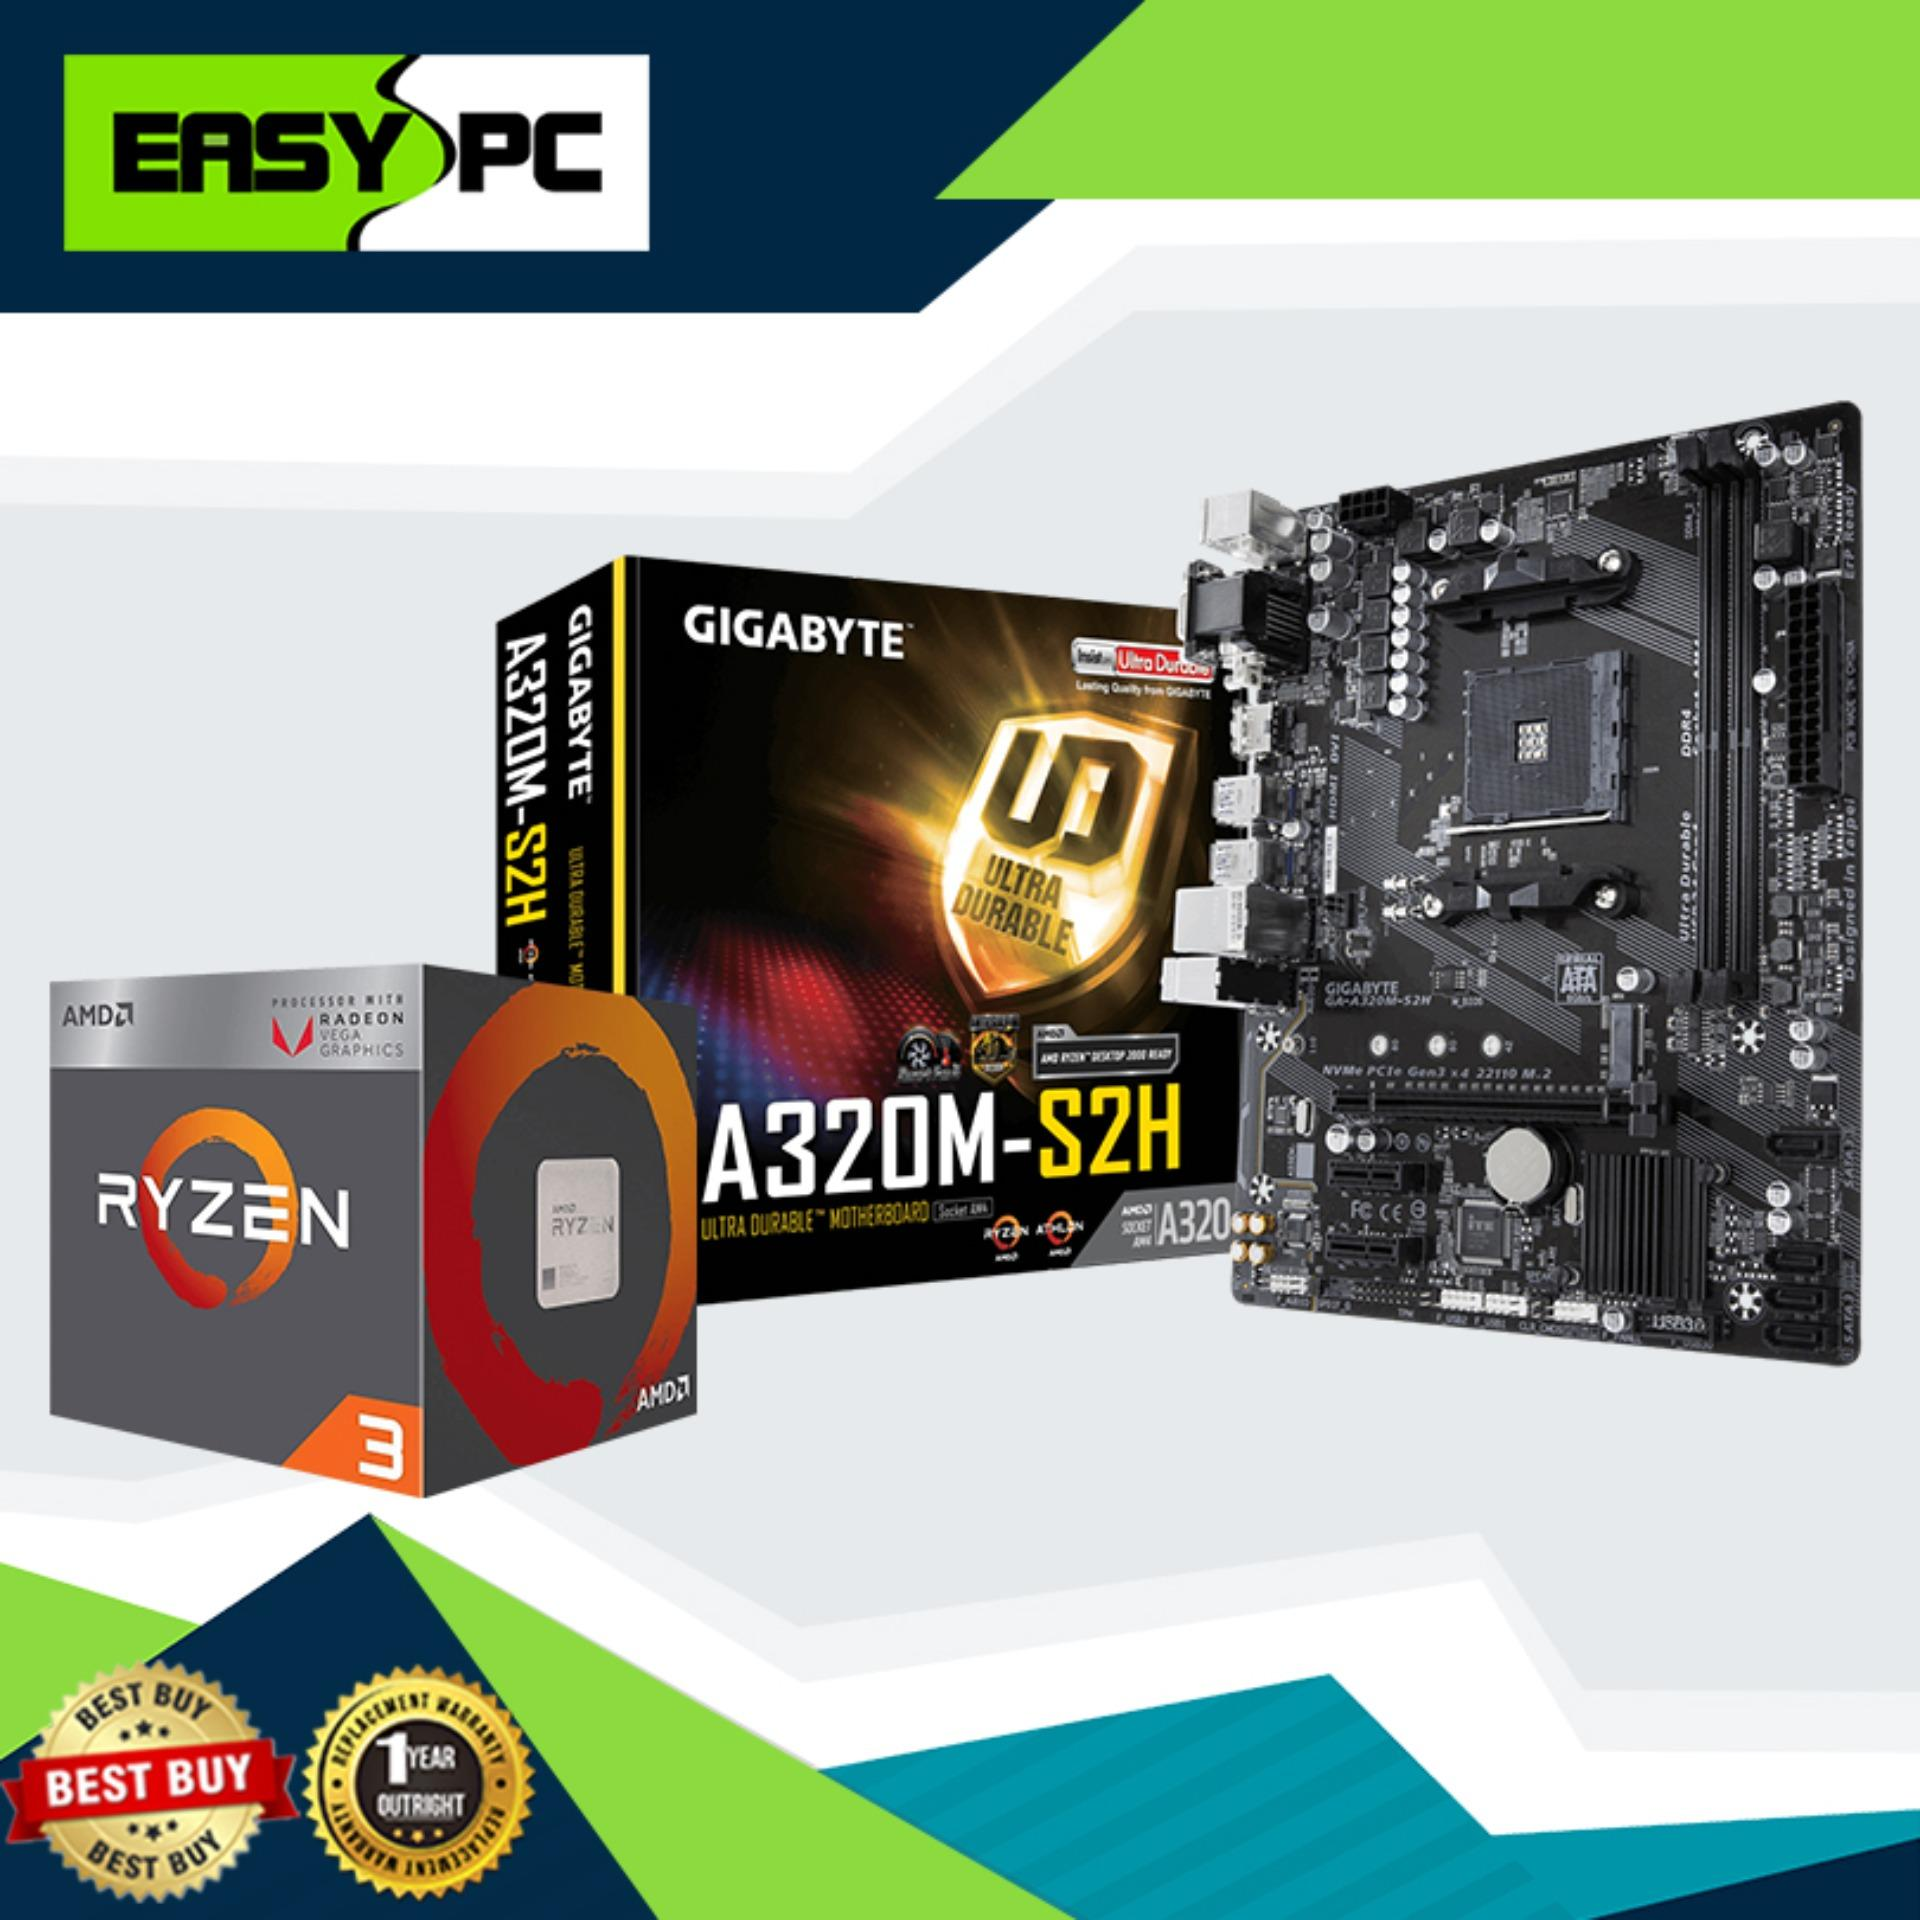 Gaming Desktop Processor and Motherboard Bundle Promo, AMD Processor Ryzen  3 2200G Socket AM4 3 5ghz, Gigabyte GA-A320M-S2H Motherboard Socket Am4,